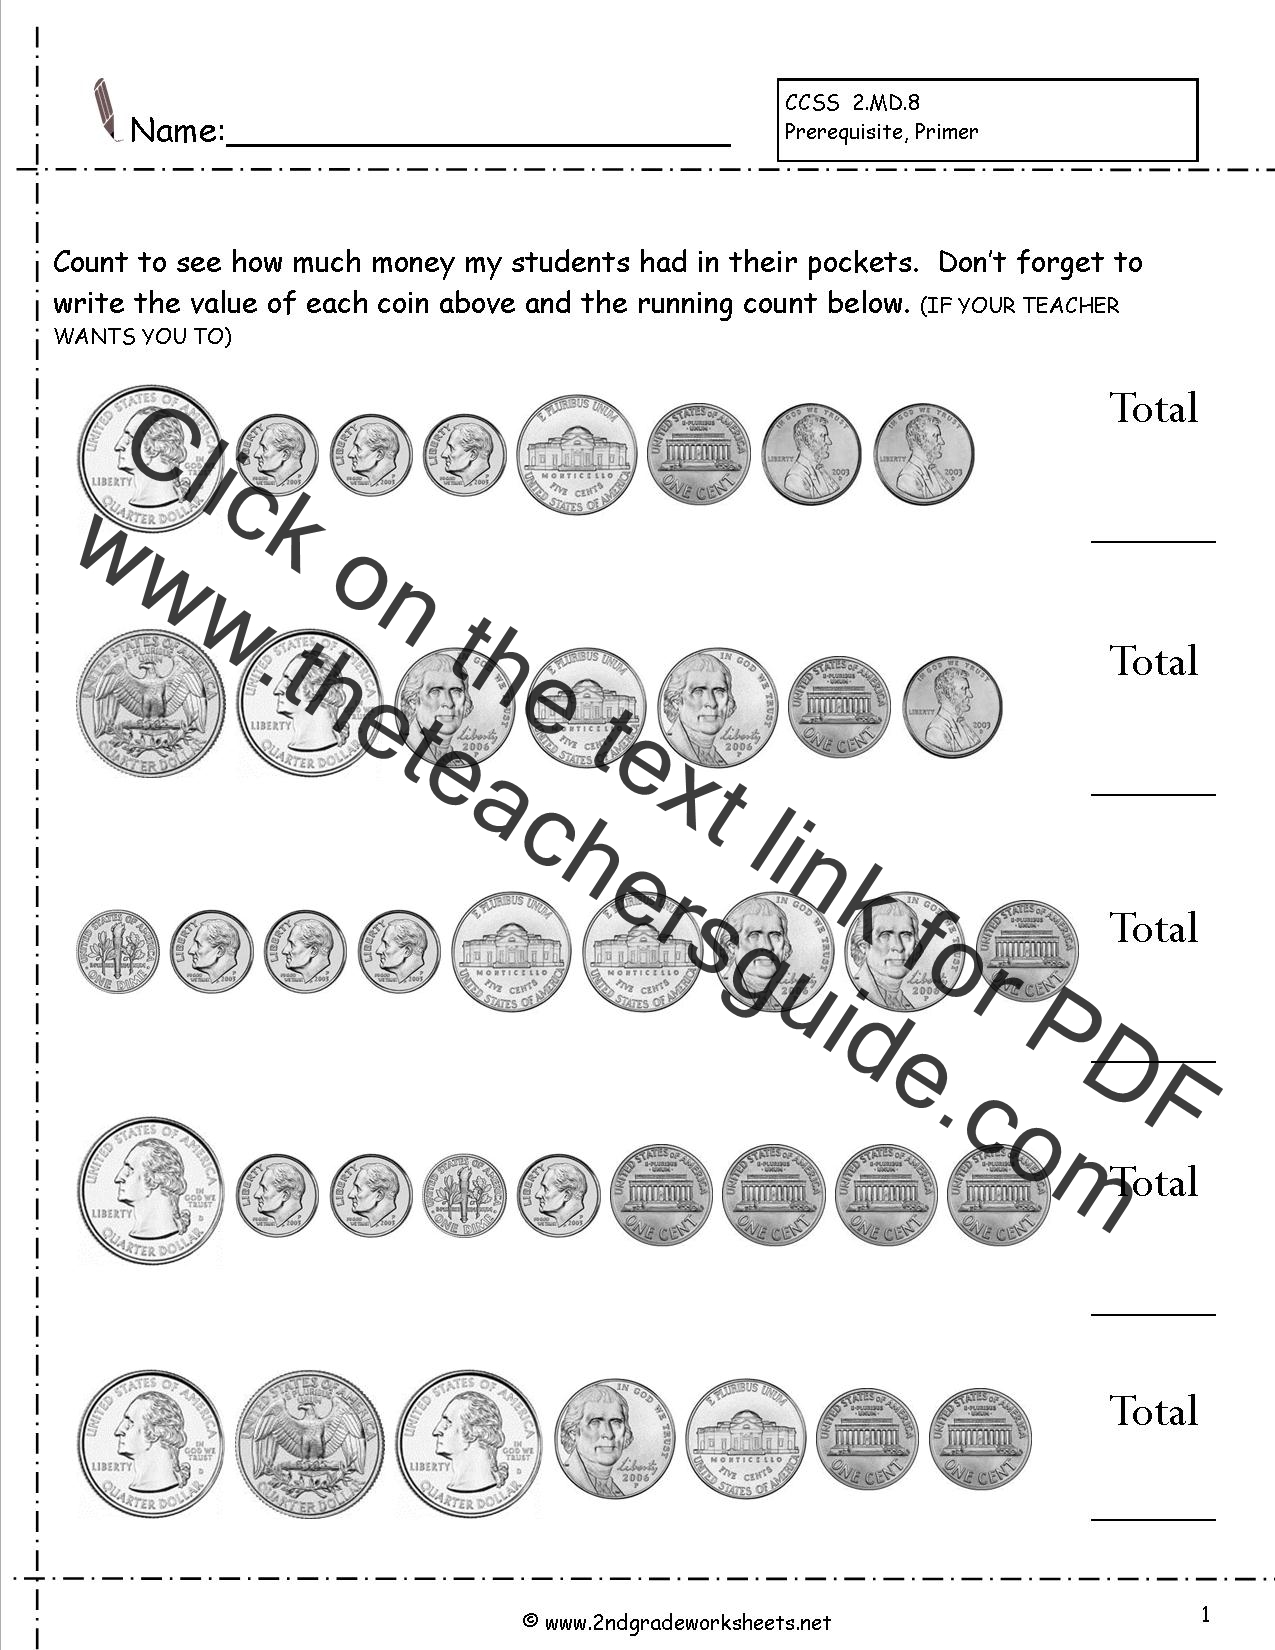 Worksheets Coin Value Worksheets counting coins and money worksheets printouts with quarters